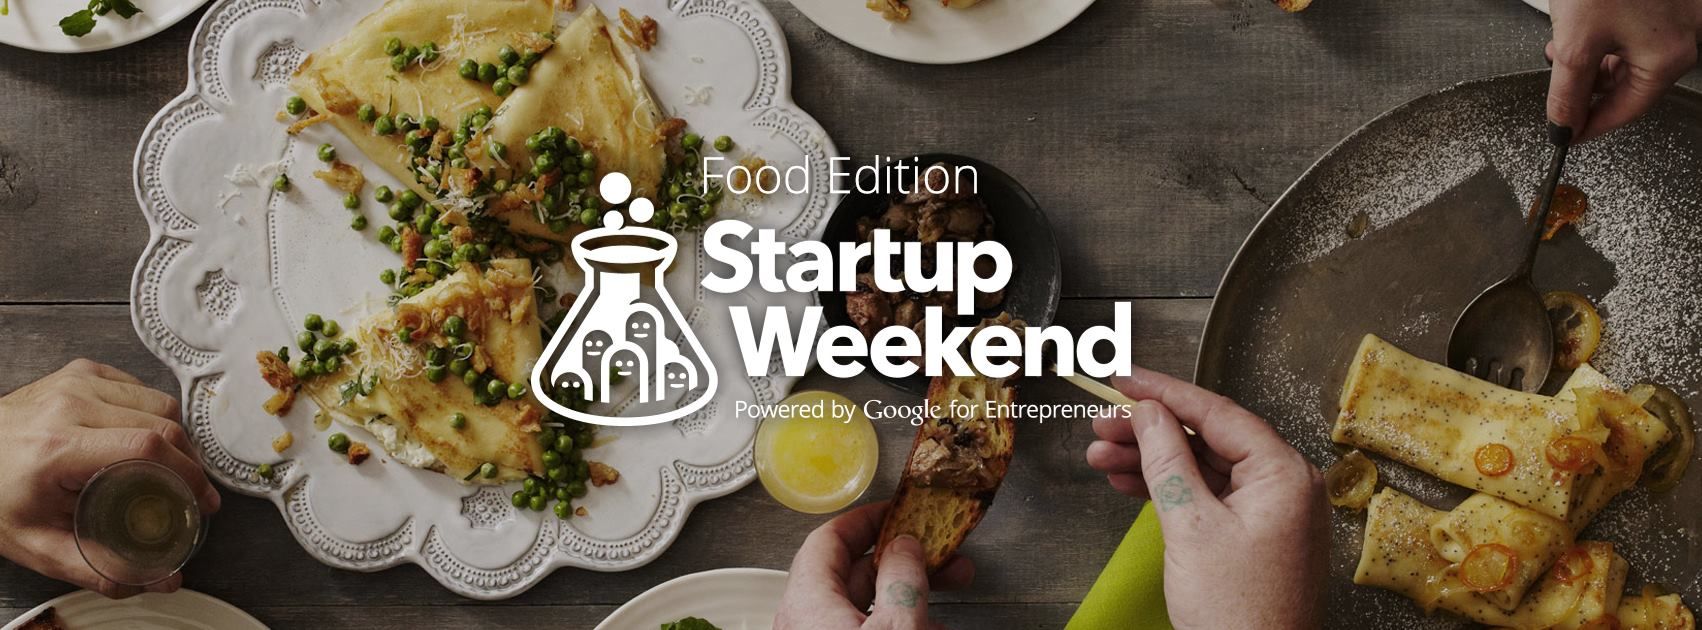 Startup Weekend Food Edition